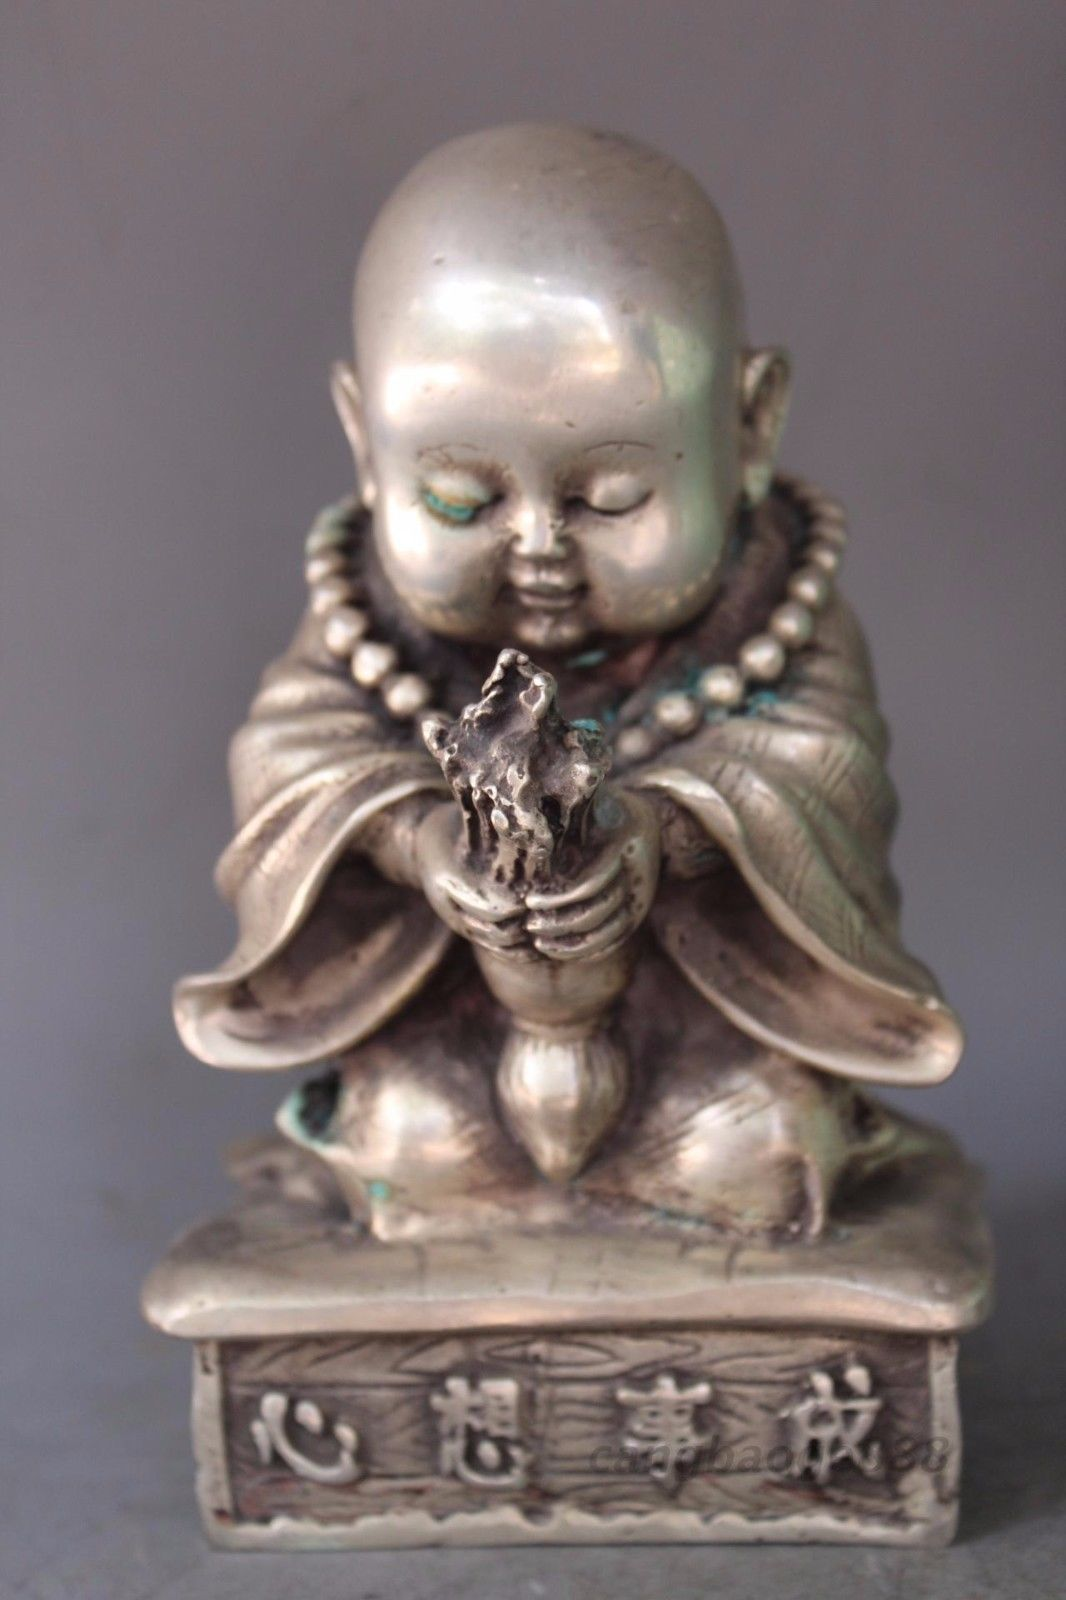 DELICATE CHINESE SILVER COPPER HANDWORK CARVED SMALL BUDDHA STATUESDELICATE CHINESE SILVER COPPER HANDWORK CARVED SMALL BUDDHA STATUES